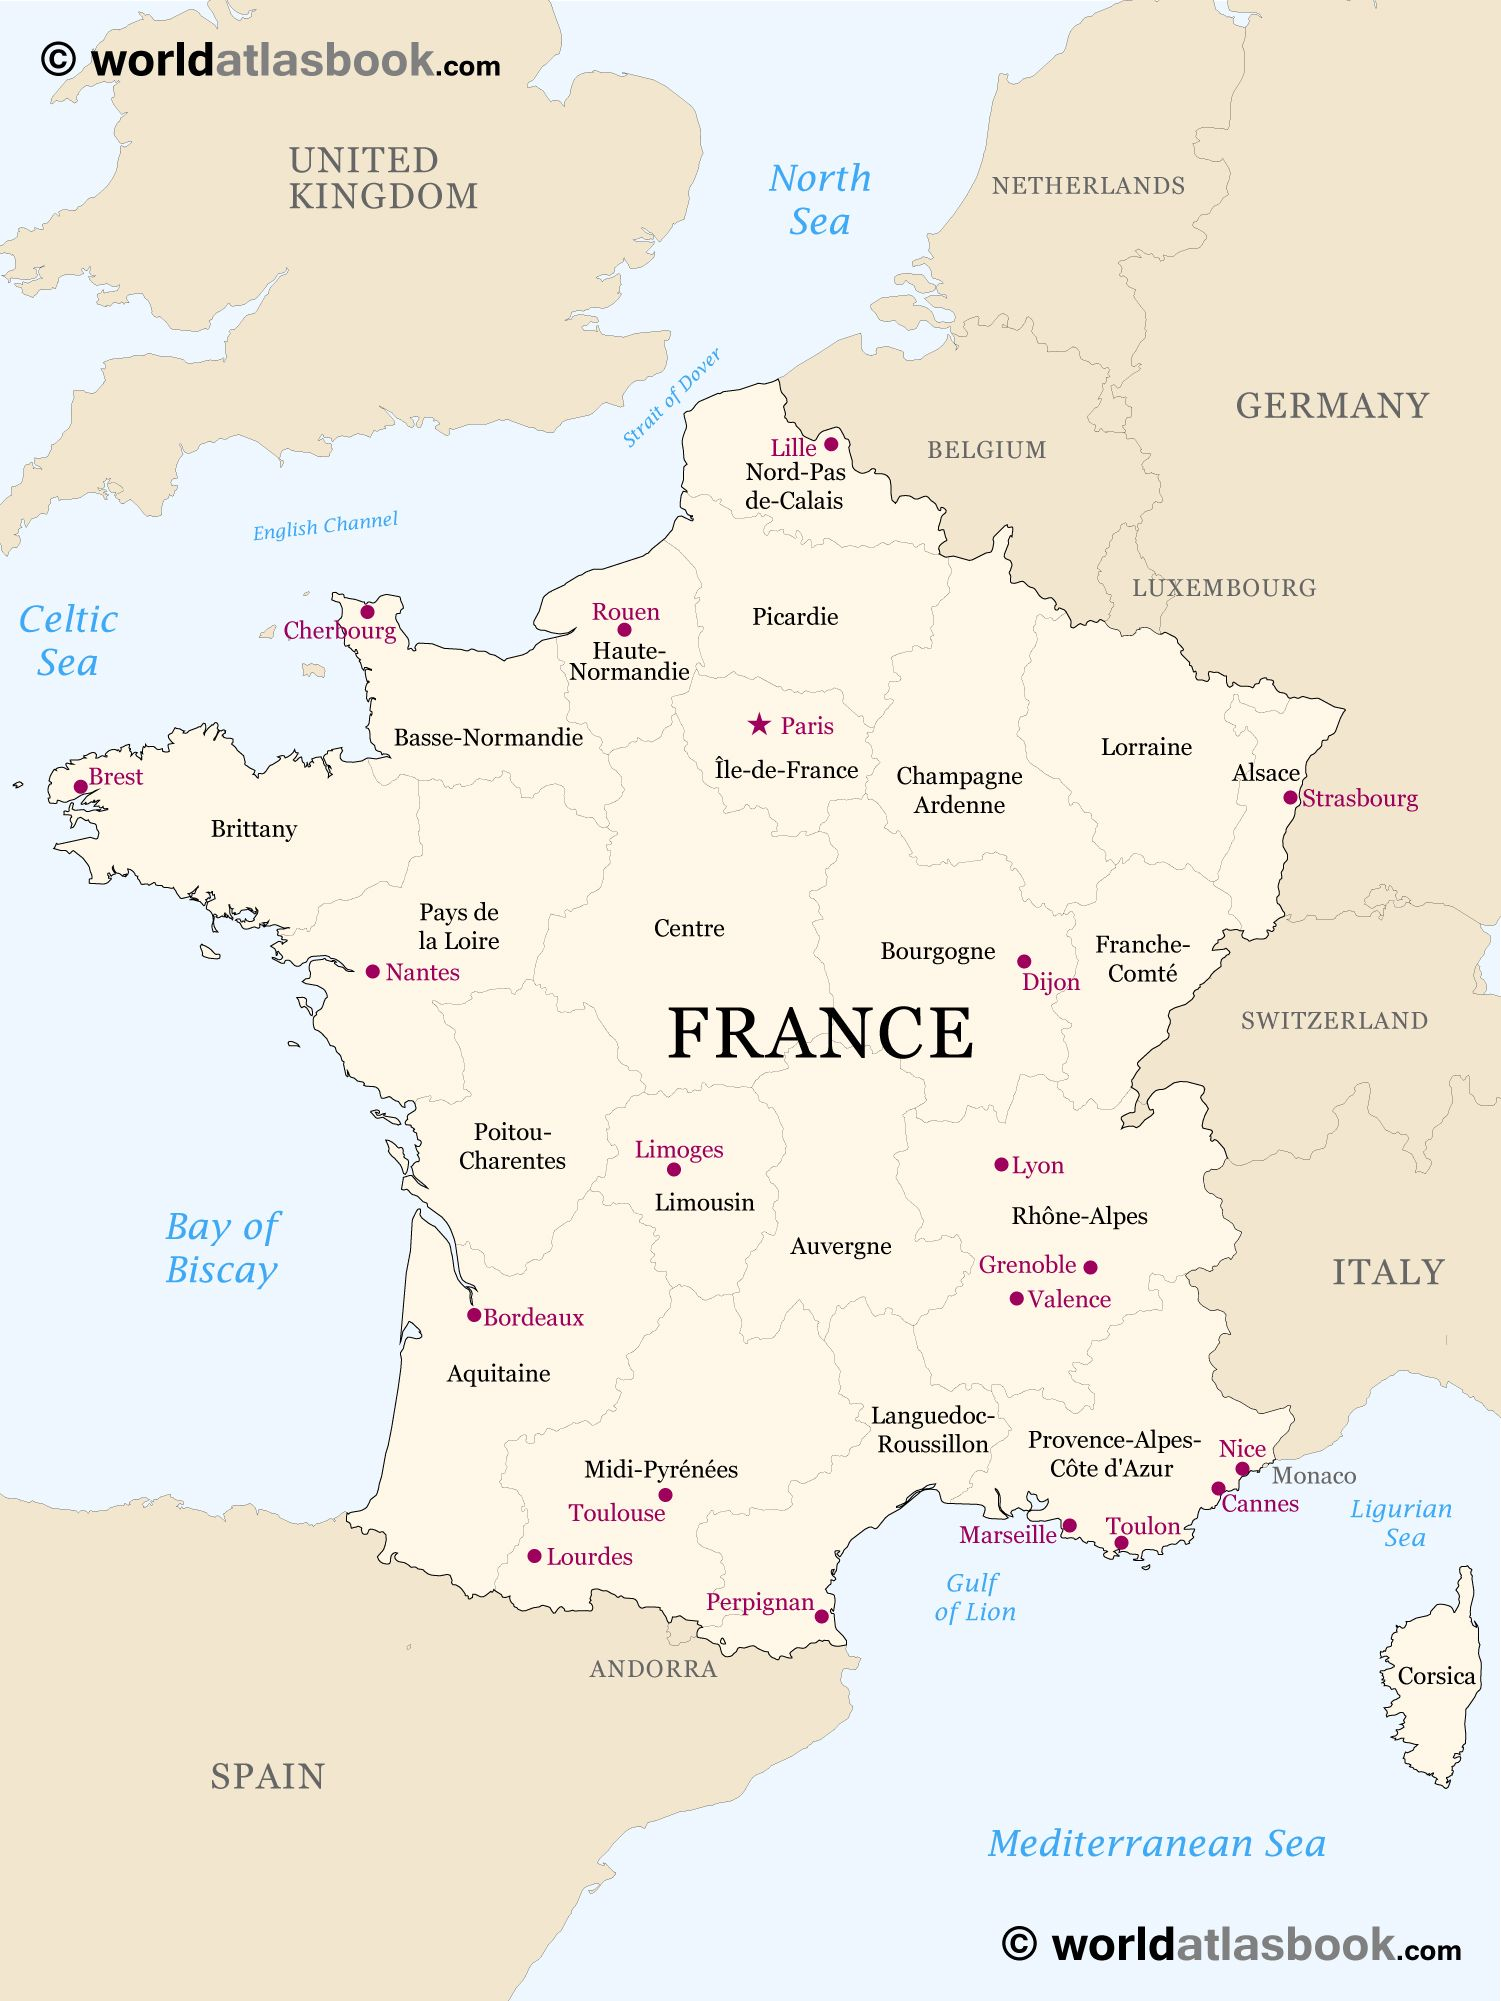 Printable outline maps for kids map of france outline blank map printable outline maps for kids map of france outline blank map of france map of map of franceparis franceworld gumiabroncs